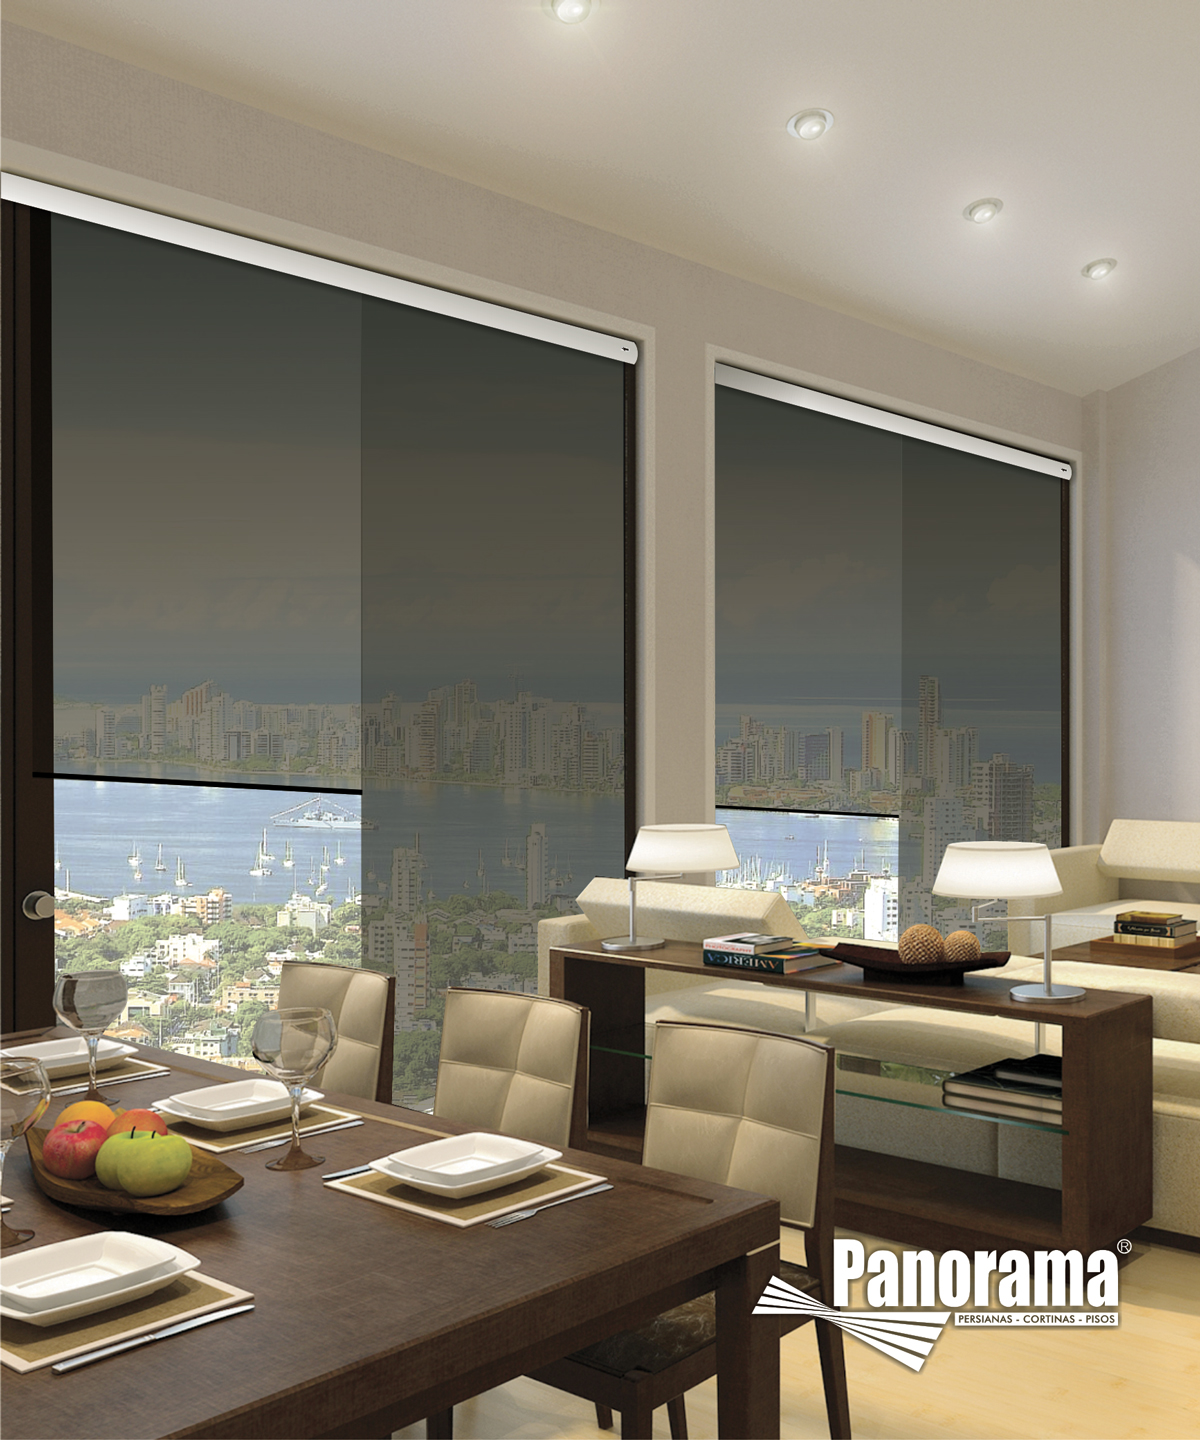 Portafolio  DMS Decoracin  Cortinas persianas muebles